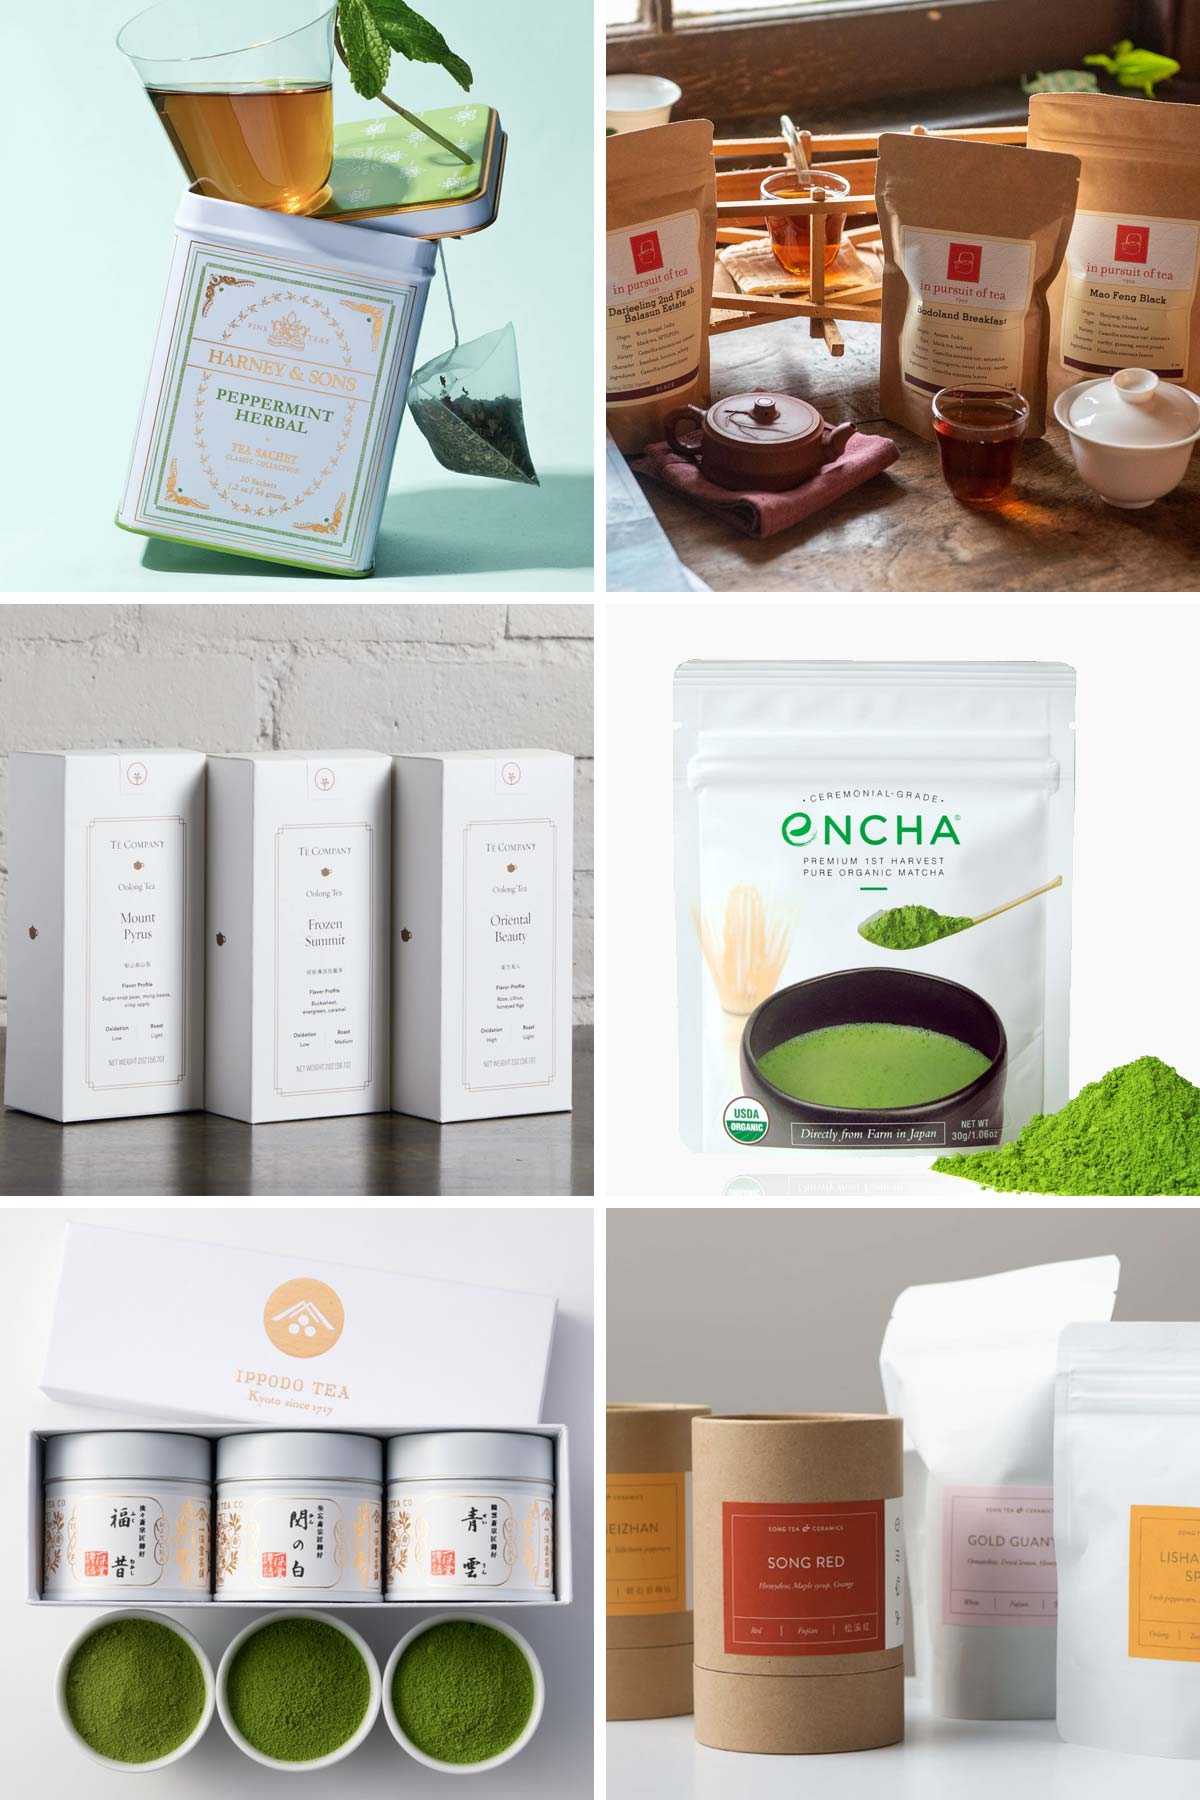 Six photos of different tea packages from six tea companies.